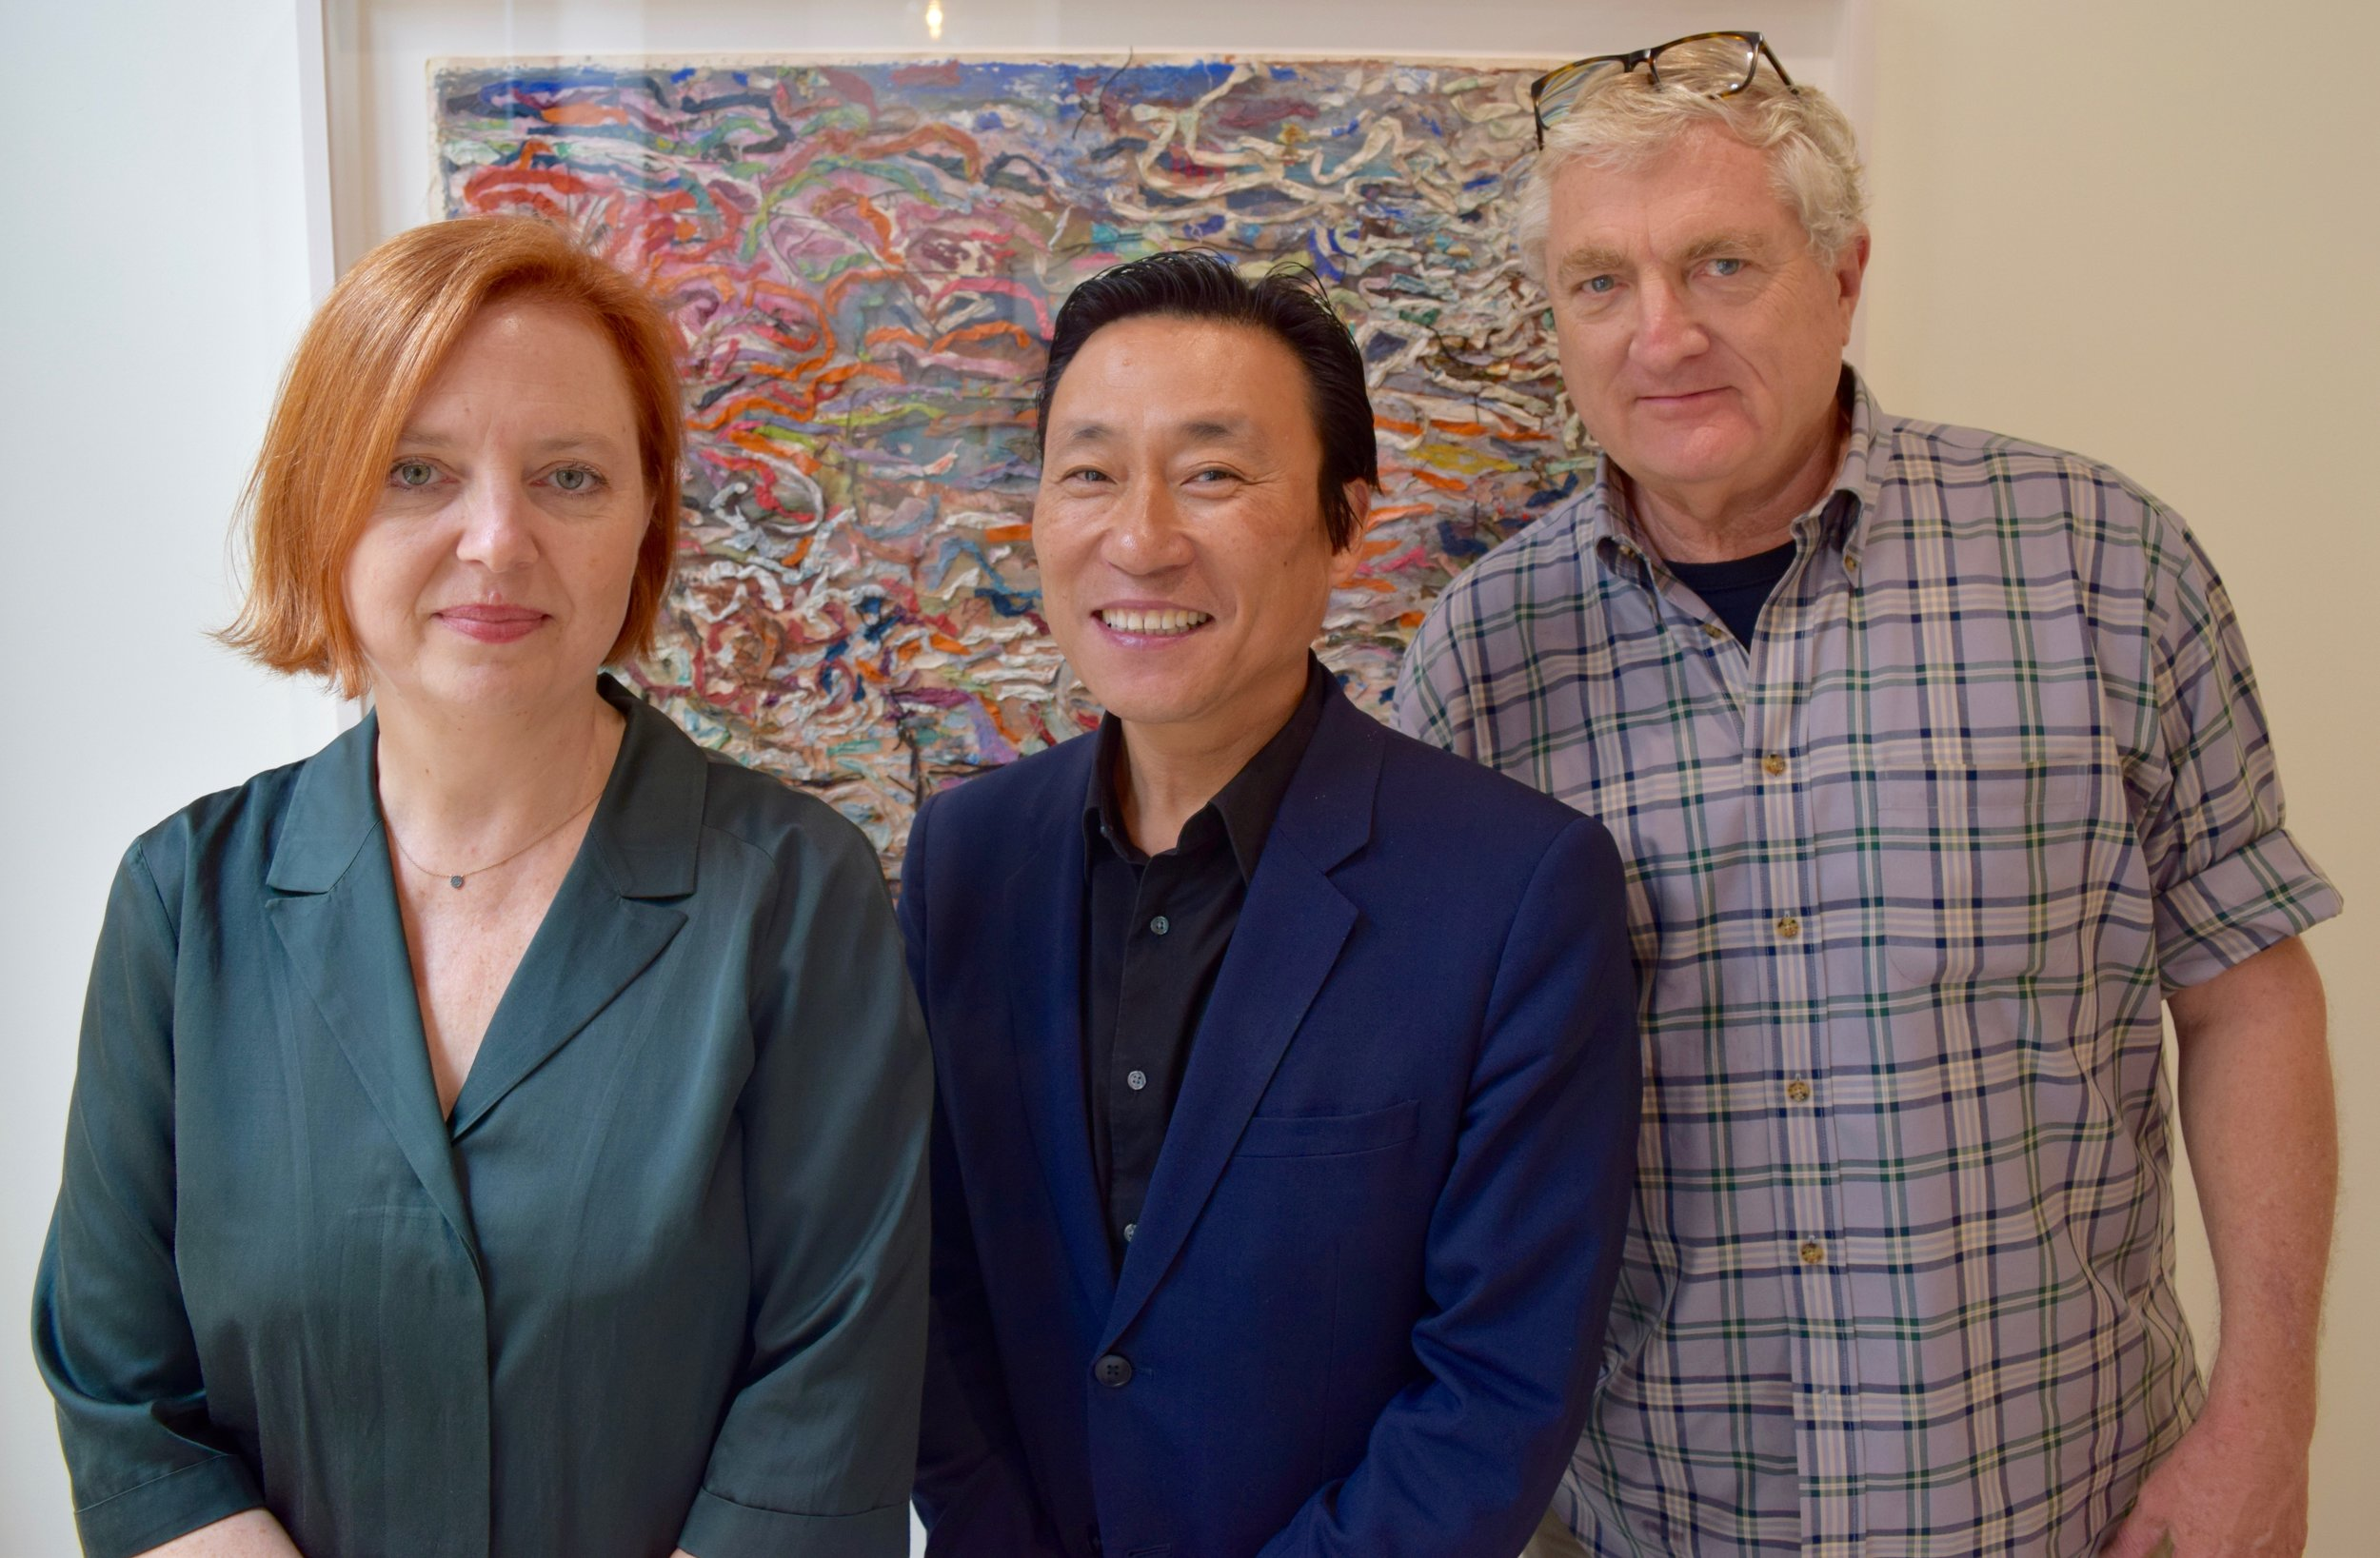 Rabkin Foundation Awards $400,000 to Art Journalists - Eight Visual Art Journalists Win $50,000 EachFrom left to Right: Jurors Lisa Gabrielle Mark, Publisher at the Los Angeles County Museum of Art, Paul Ha, Director of the List Visual Arts Center at Massachusetts Institute of Technology, Cambridge, Massachusetts and Walter Robinson, artist, art critic, and former editor from New York City.